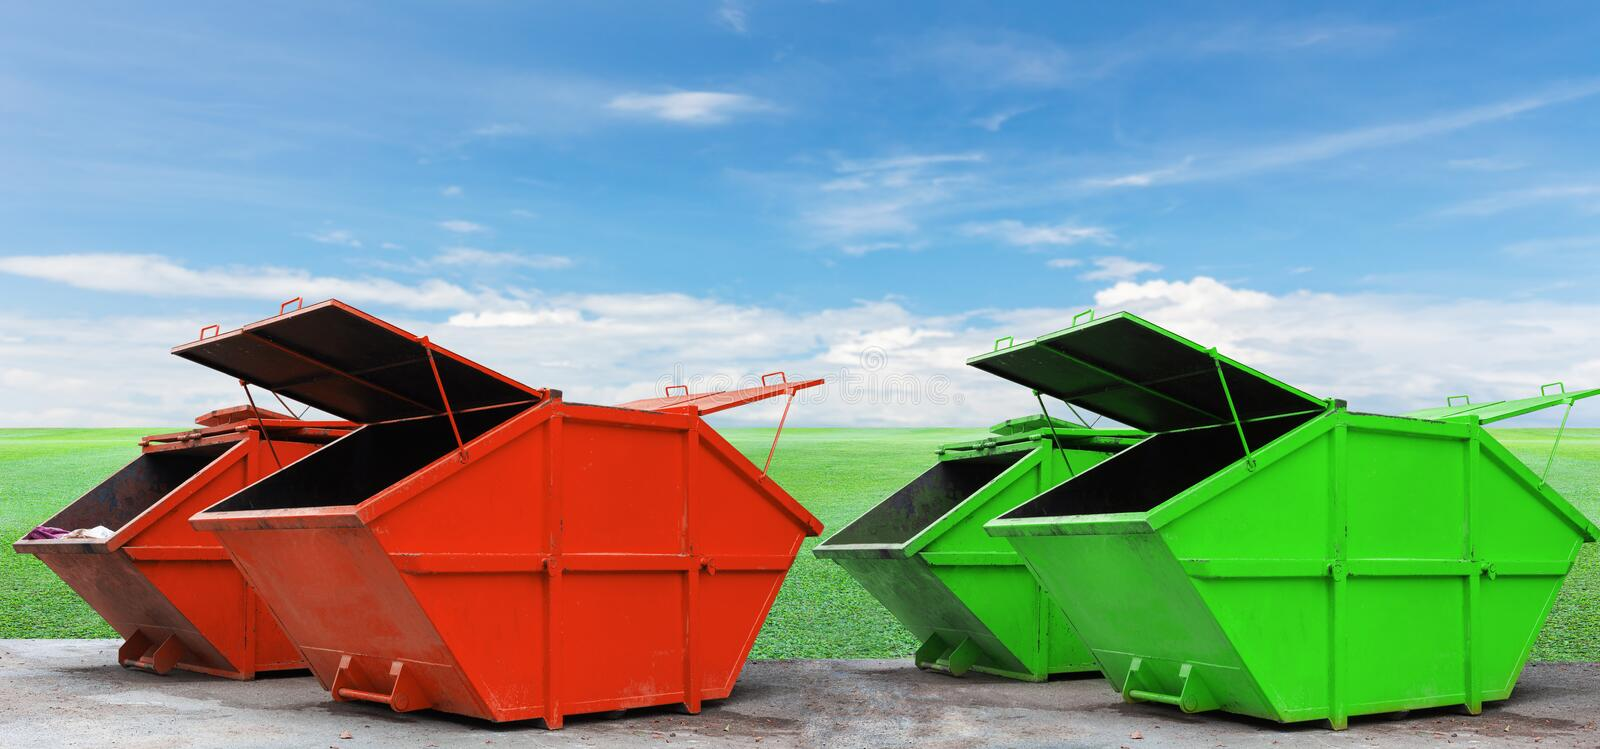 Colorful Industrial Waste Bin dumpster for municipal waste or. Industrial waste on green grass and blue sky background,with ecology concept stock image